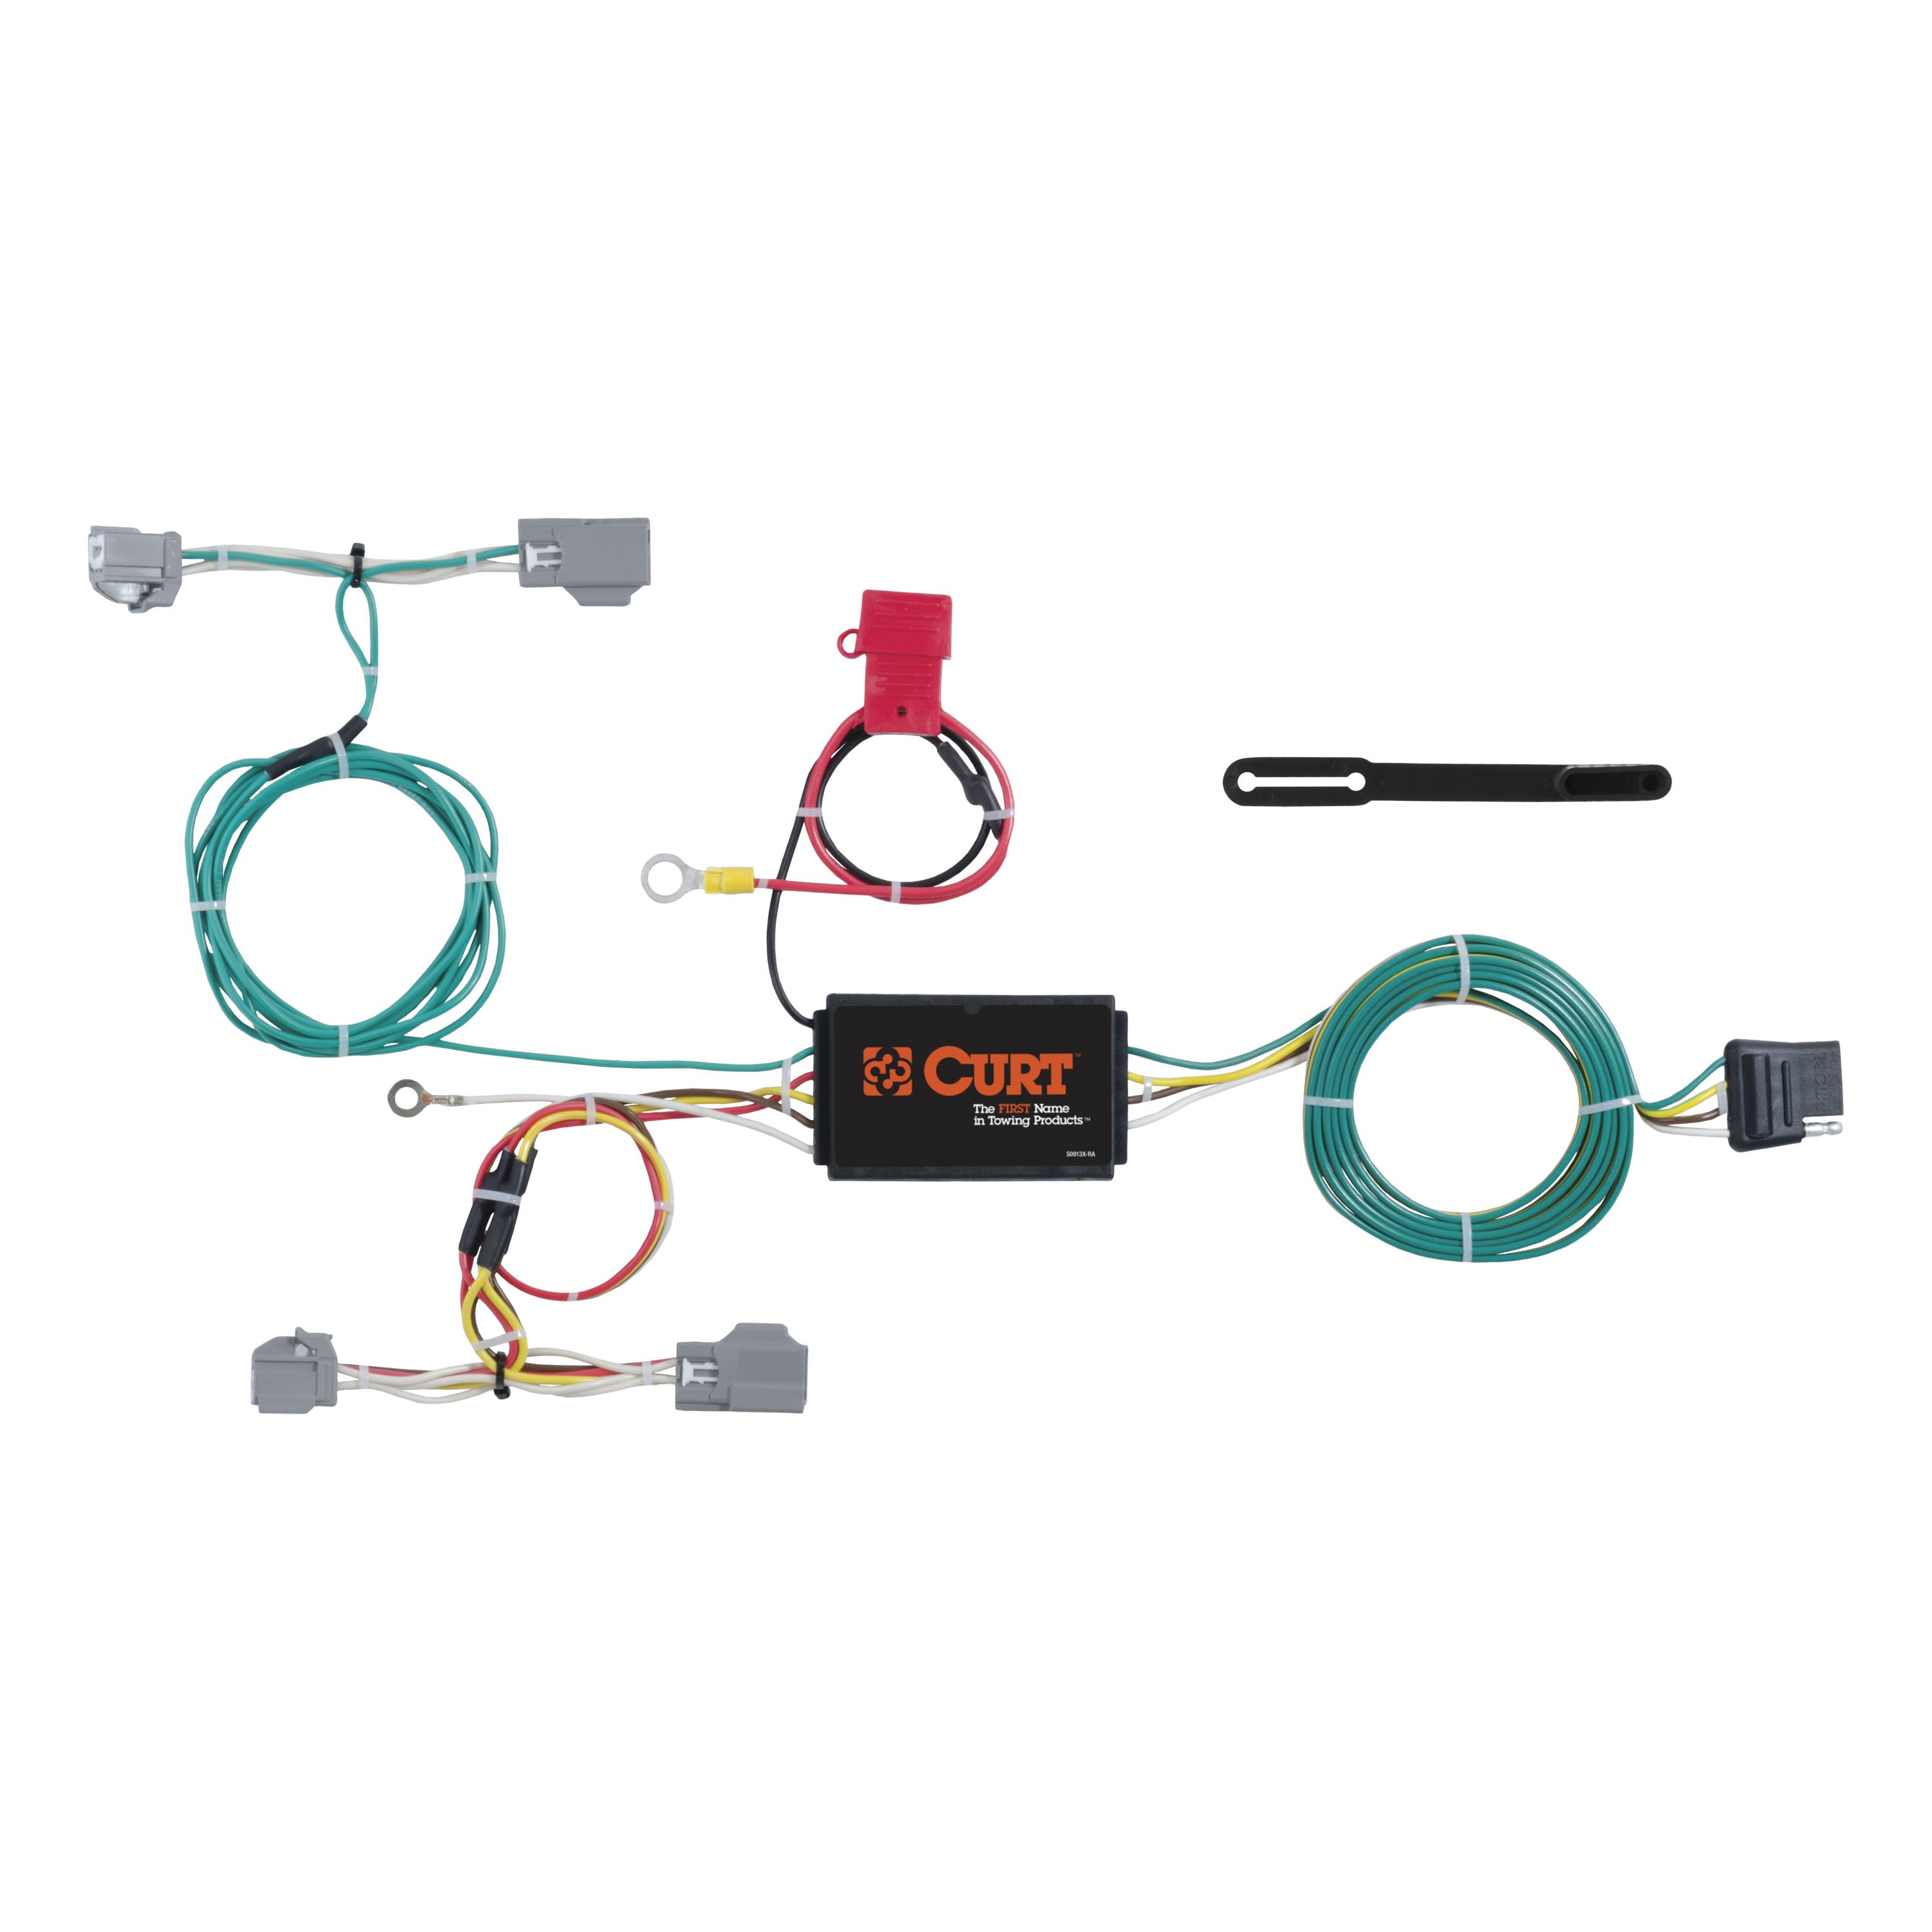 All Products for 2018 Volvo XC90 on lexus wiring harness, mitsubishi wiring harness, porsche wiring harness, bbc wiring harness, yamaha wiring harness, perkins wiring harness, hyundai wiring harness, case wiring harness, jaguar wiring harness, bass tracker wiring harness, chevy wiring harness, maserati wiring harness, john deere diesel wiring harness, astro van wiring harness, winnebago wiring harness, piaggio wiring harness, dodge wiring harness, lifan wiring harness, navistar wiring harness, detroit diesel wiring harness,